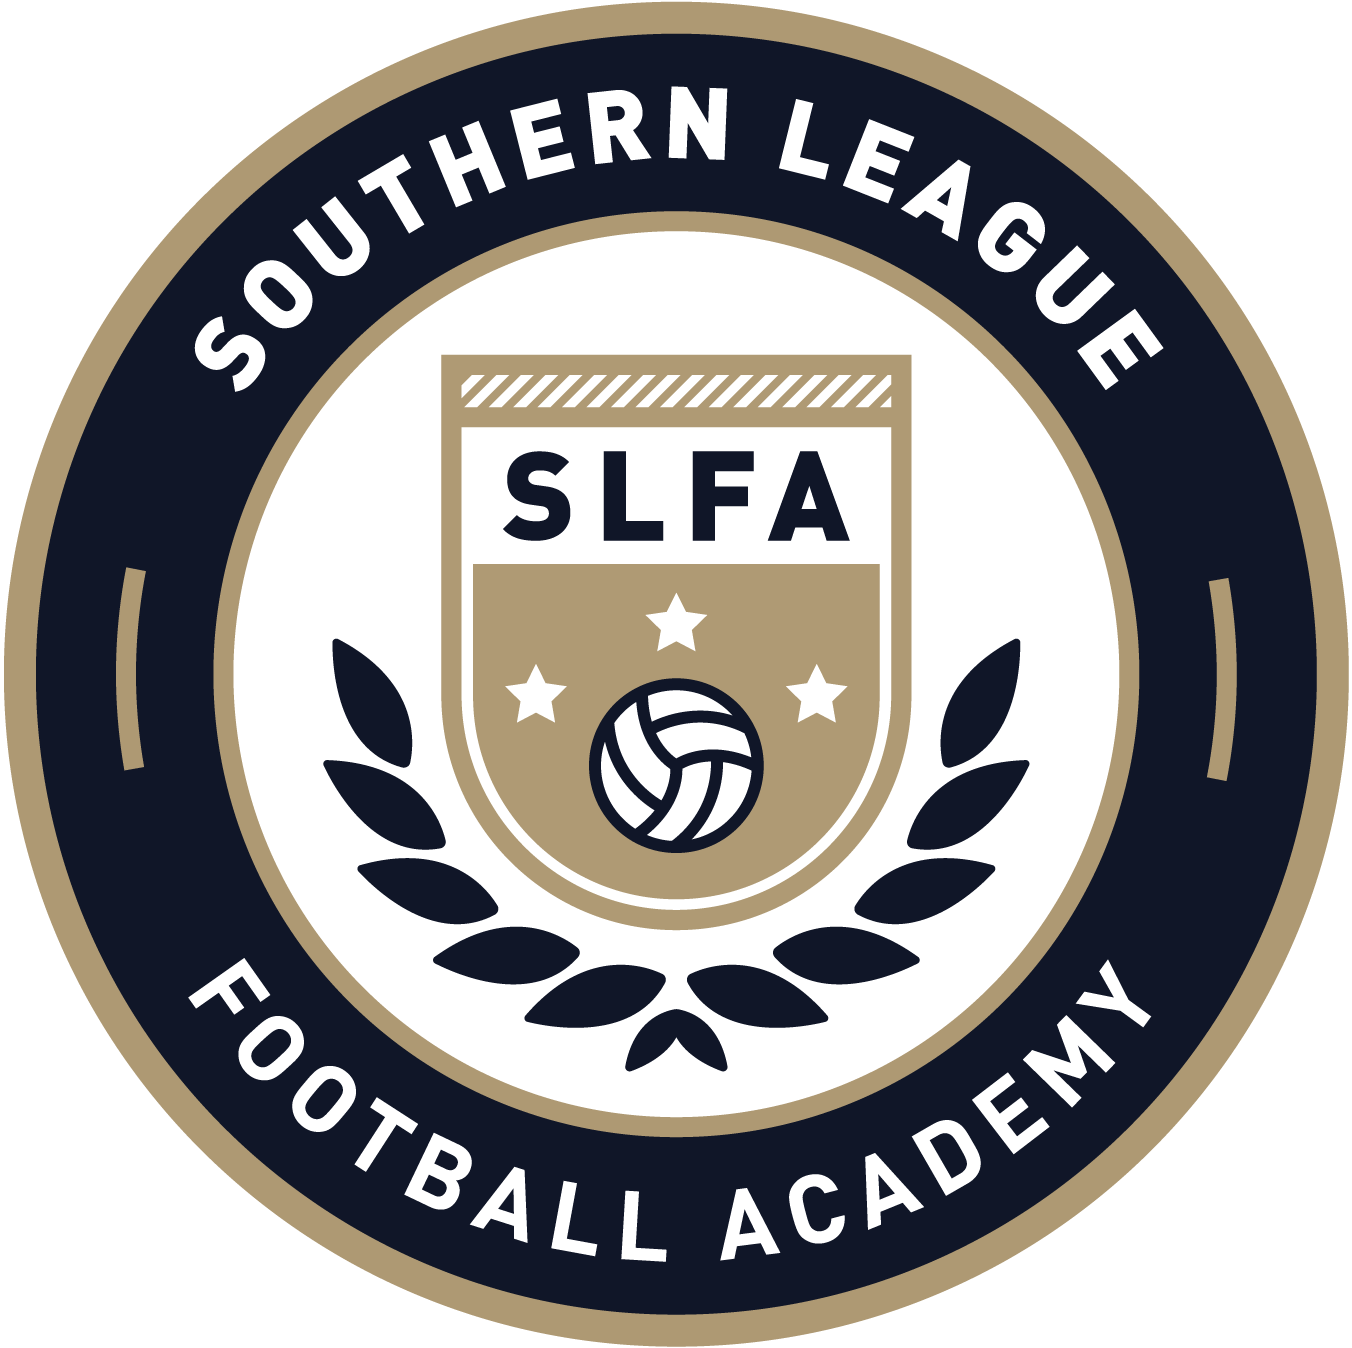 Southern League Academy